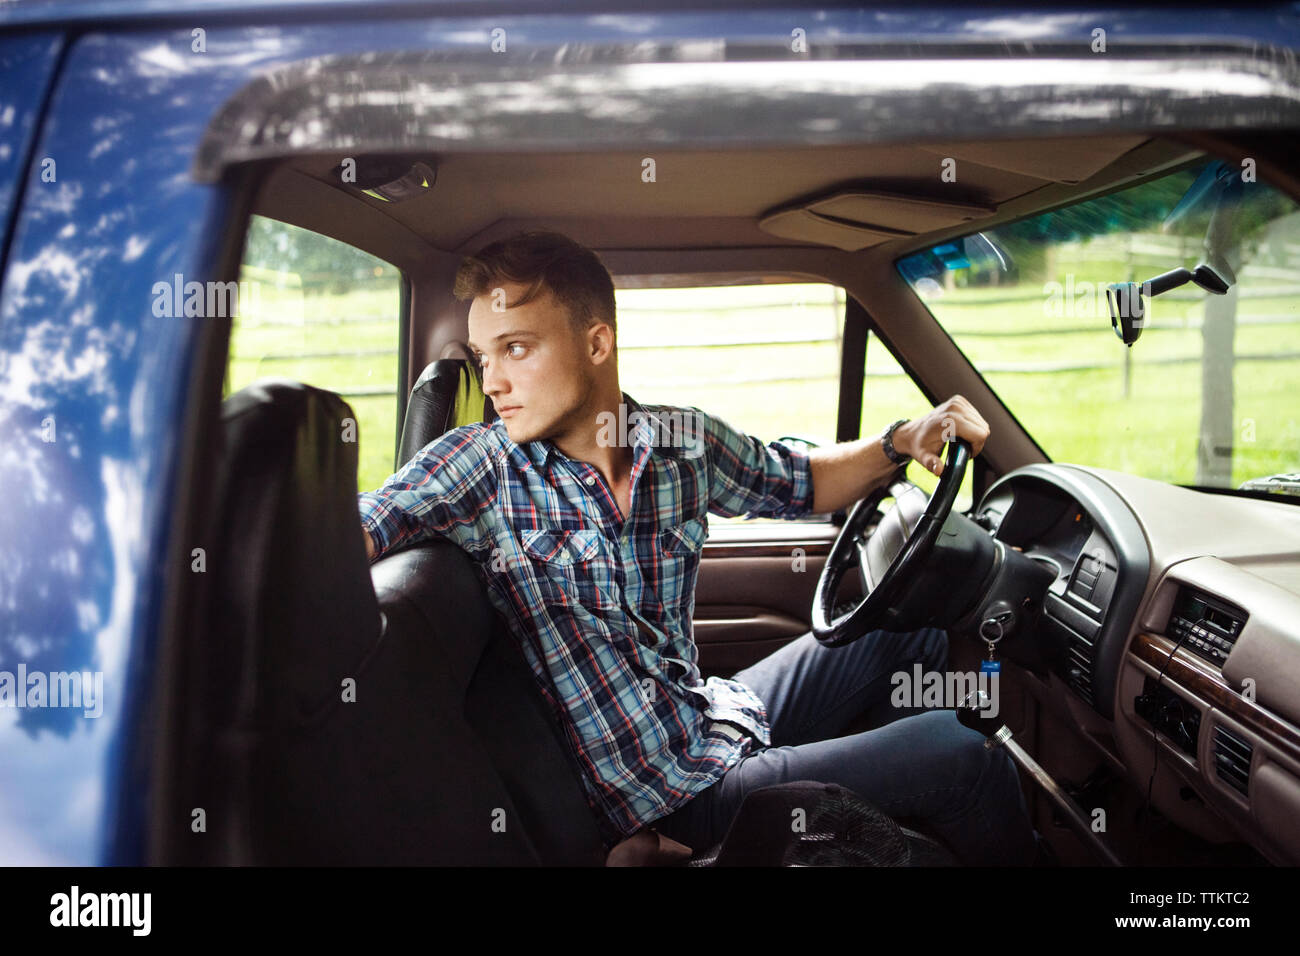 Man looking over shoulder while driving pick-up truck seen through window - Stock Image